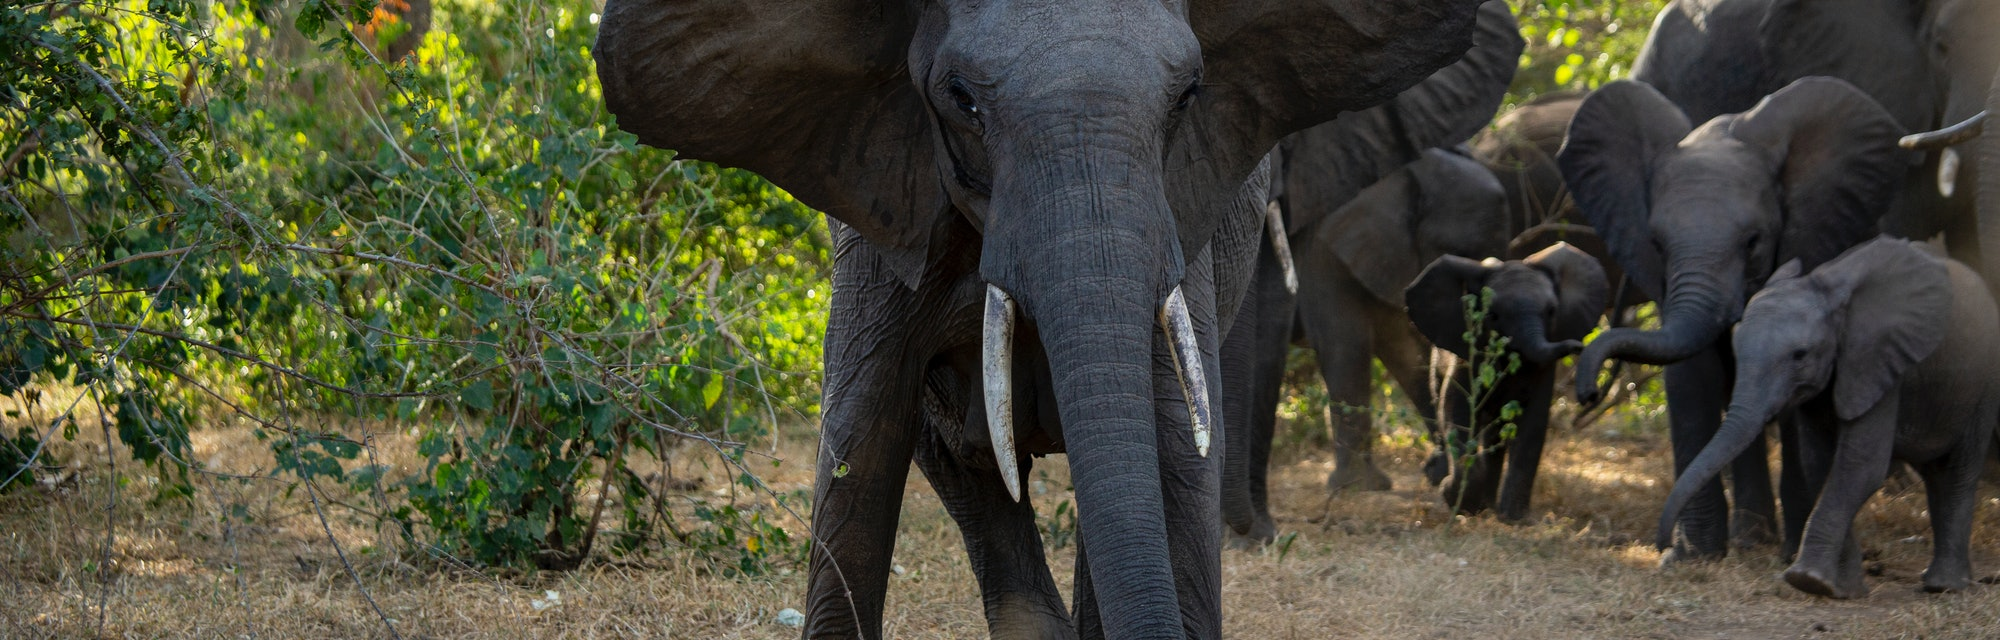 Close-up view of an angry female elephant charging the camera with young calves behind her